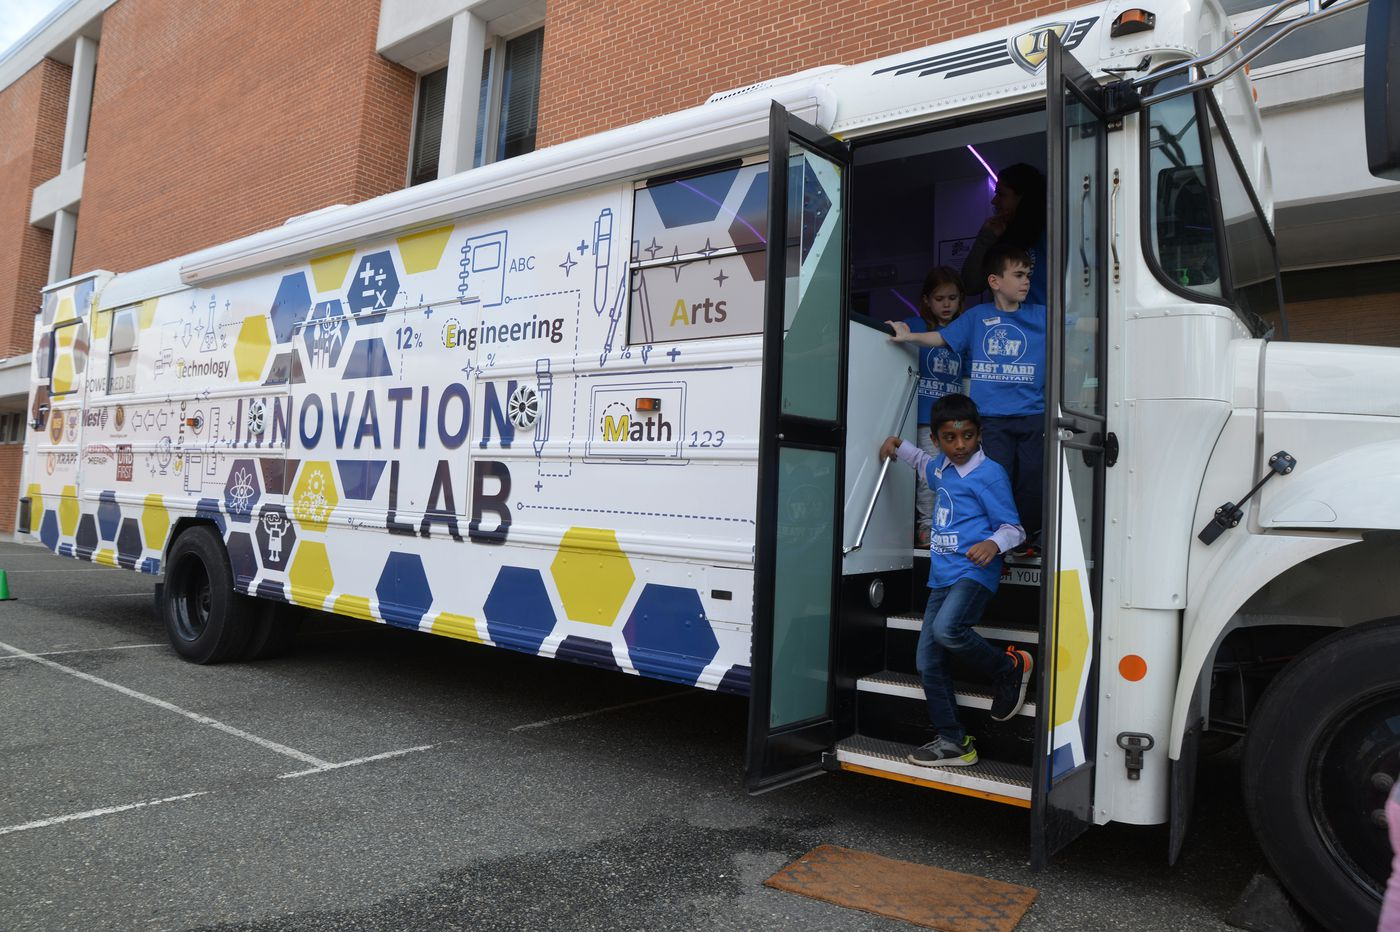 A Magic School Bus? At Downingtown they call it the Innovation Lab